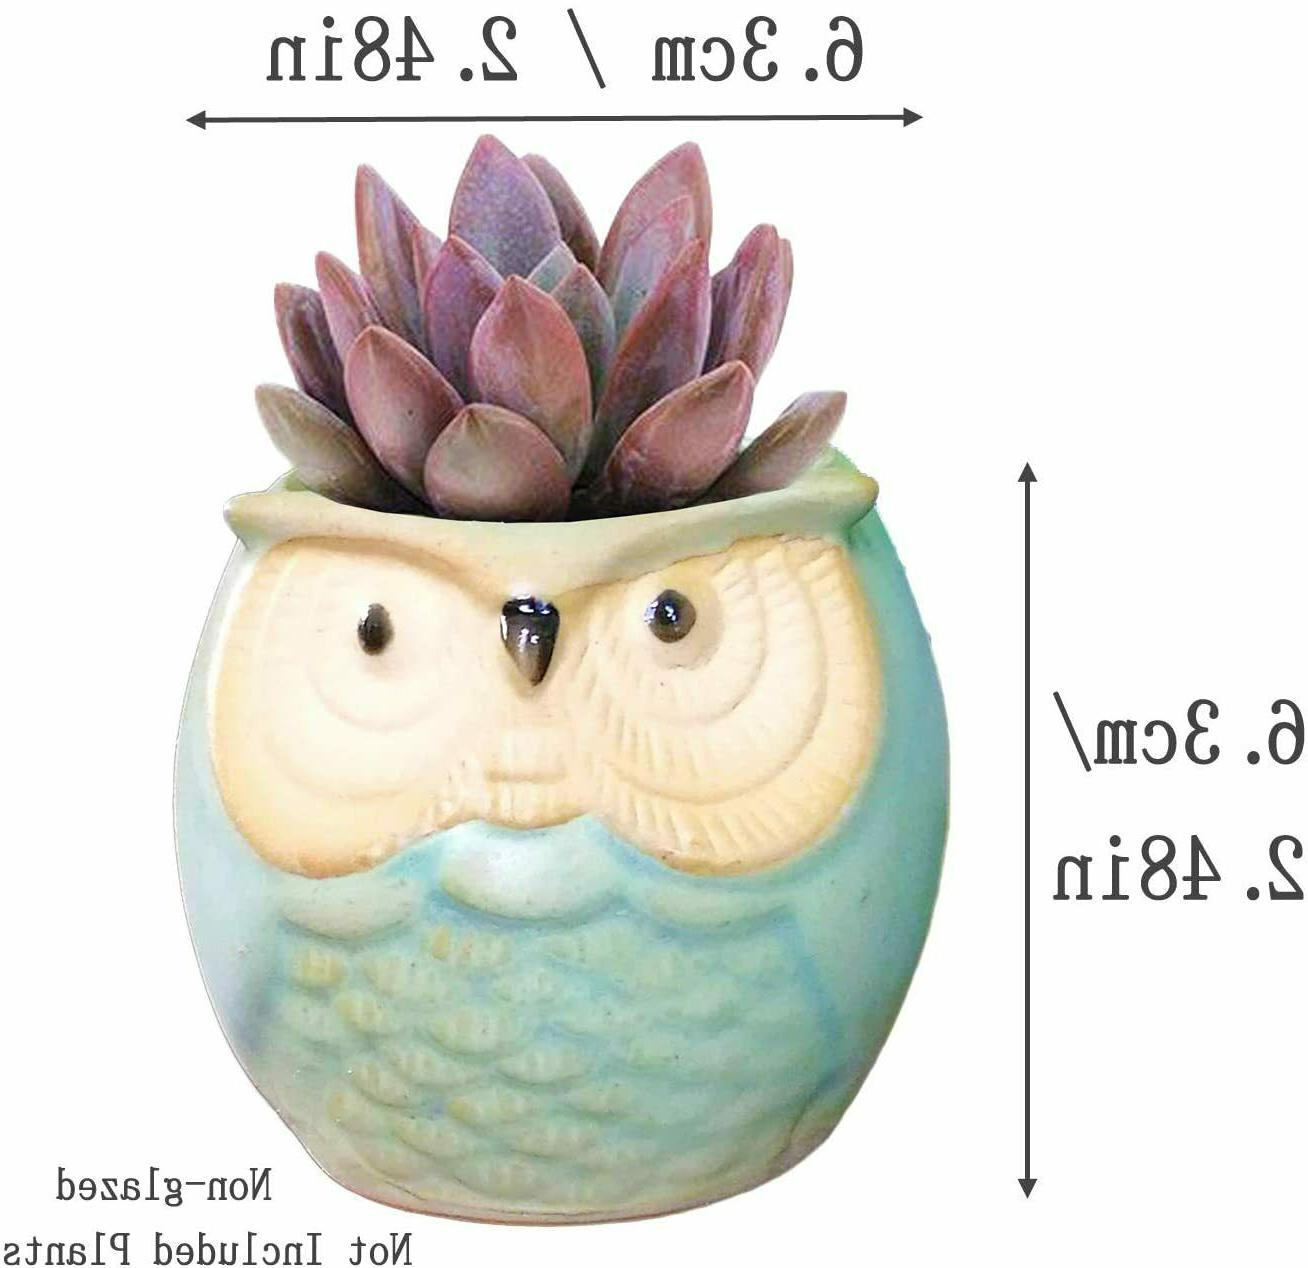 6 Pcs 2.5 Inches Ceramic Owl Succulent Planters with Holes